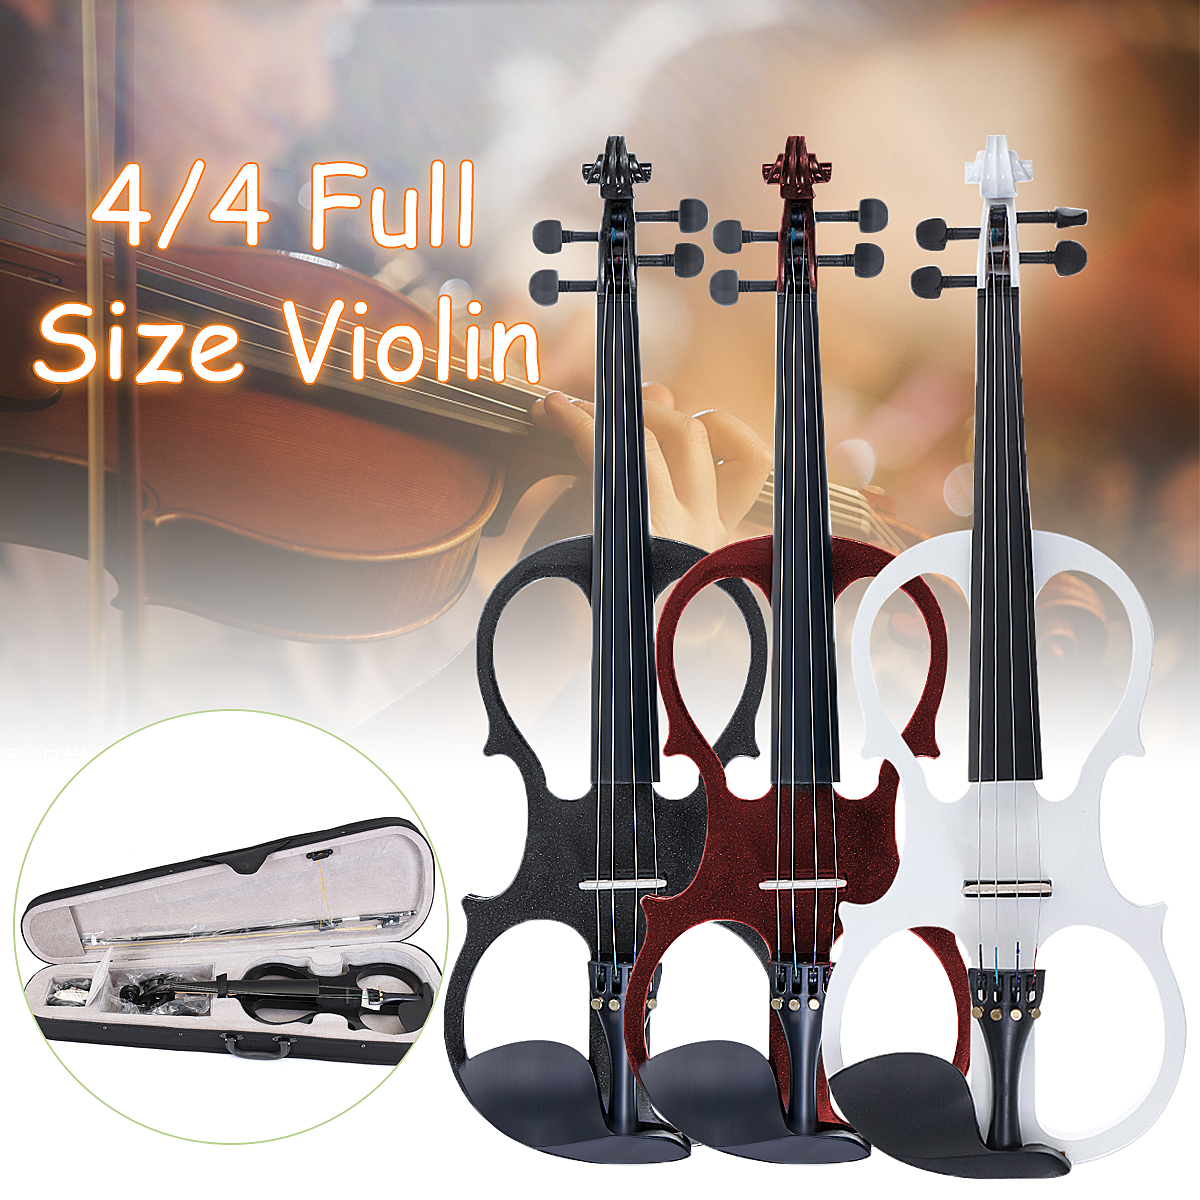 Senrhy 4/4 Electric Violin Fiddle Stringed Instrument Basswood With Fittings Cable Headphone Case For Music Lovers Beginners